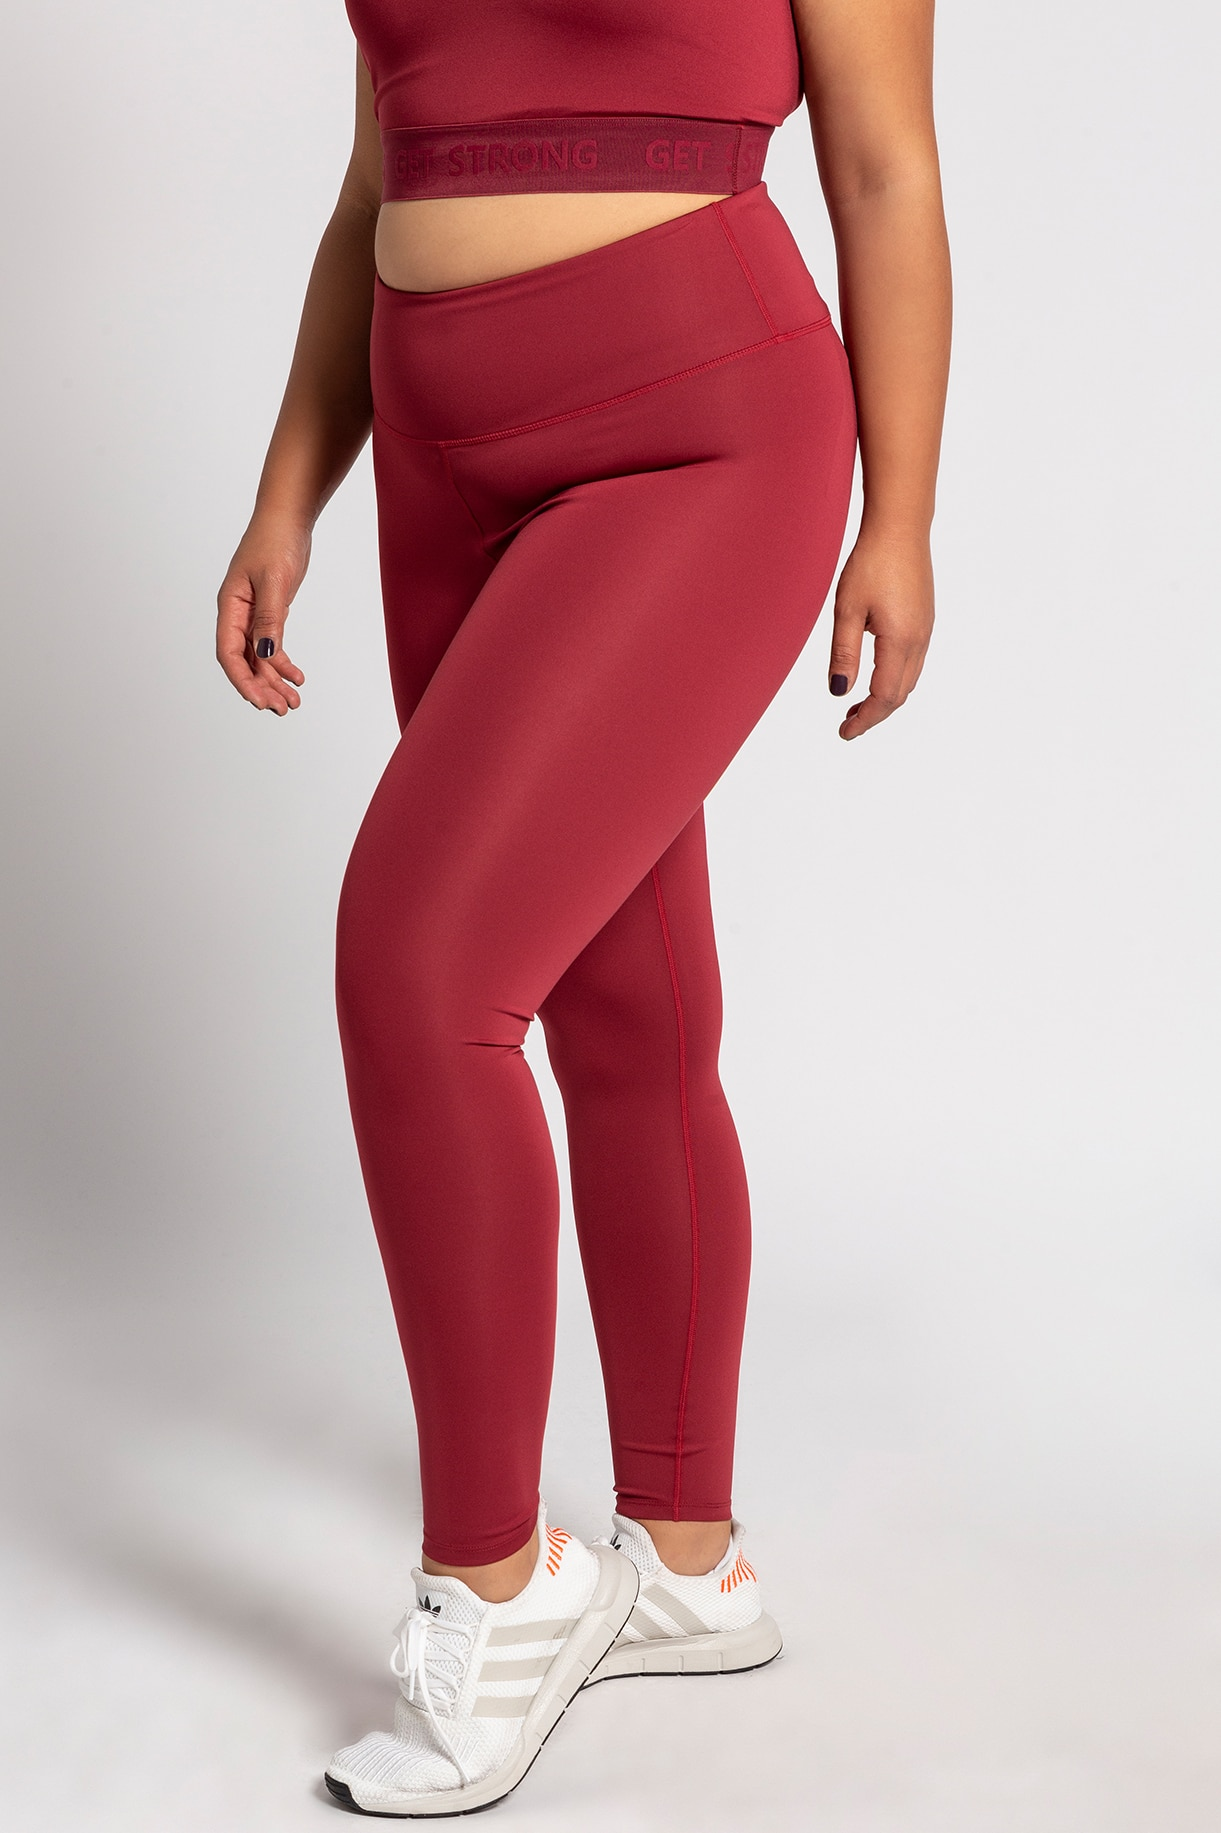 sport tights, chianti